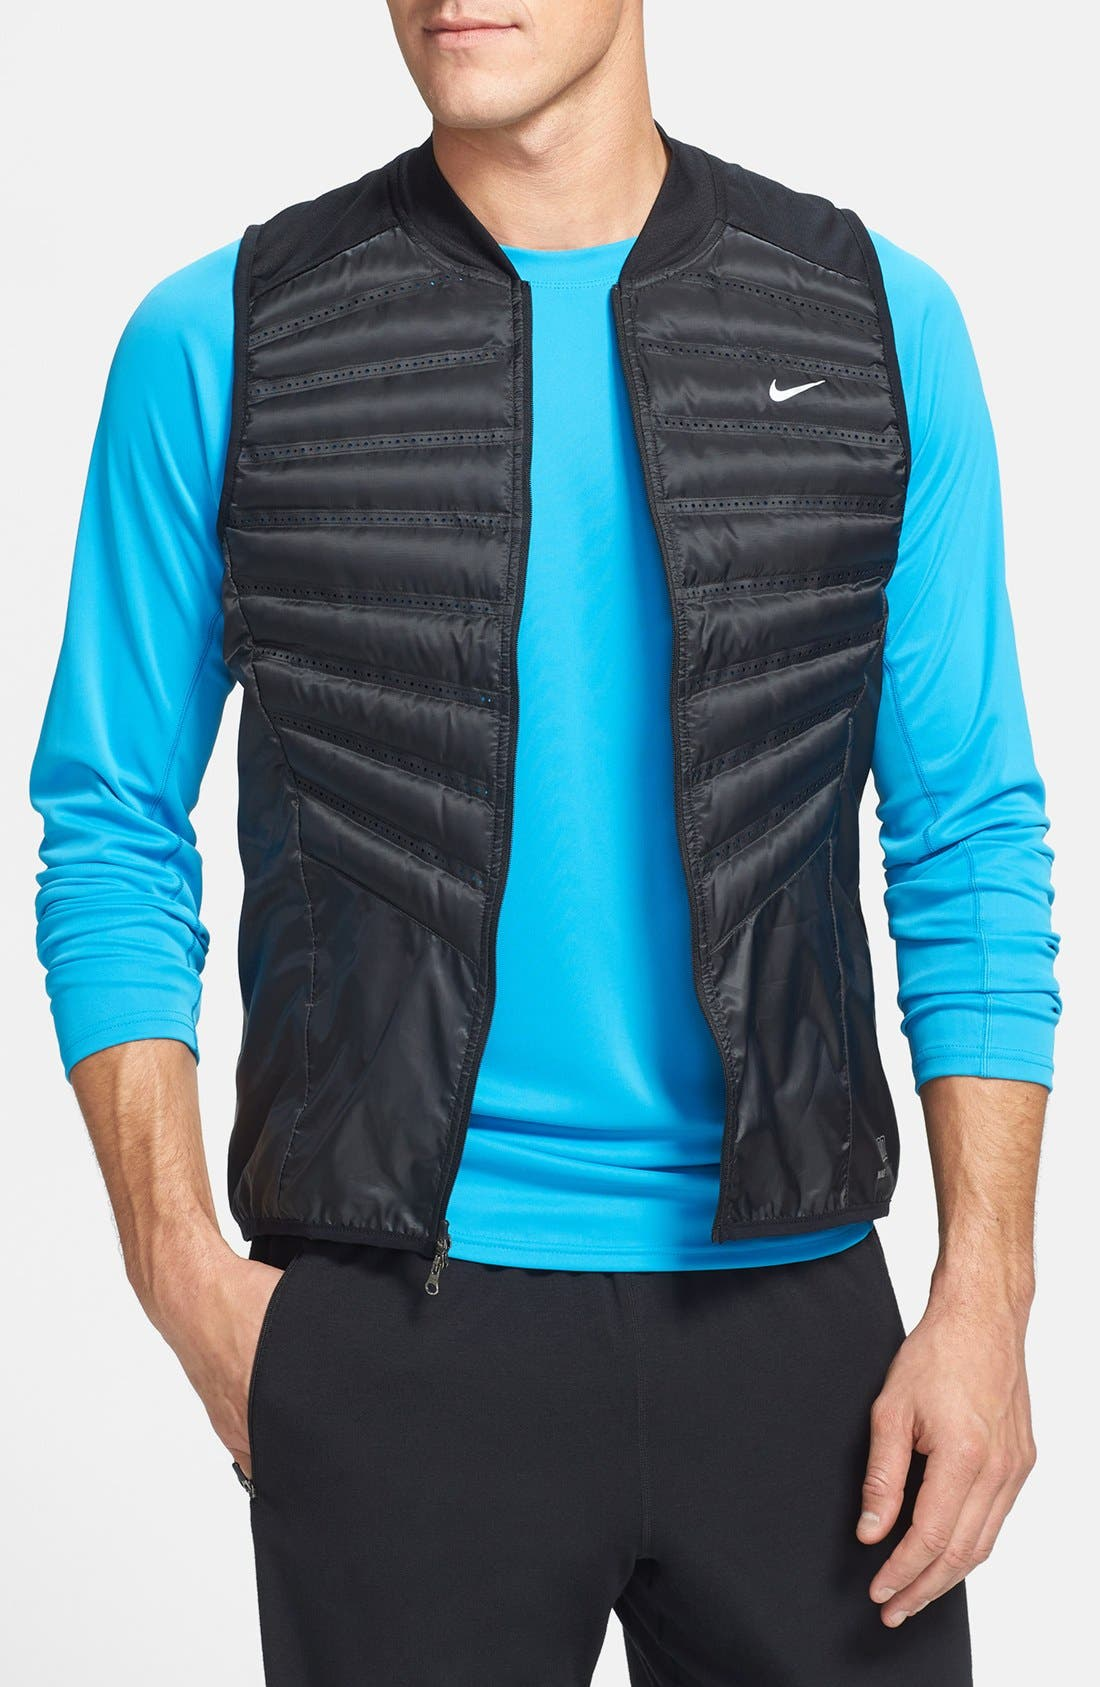 Alternate Image 1 Selected - Nike 'Aeroloft' Insulated Running Vest